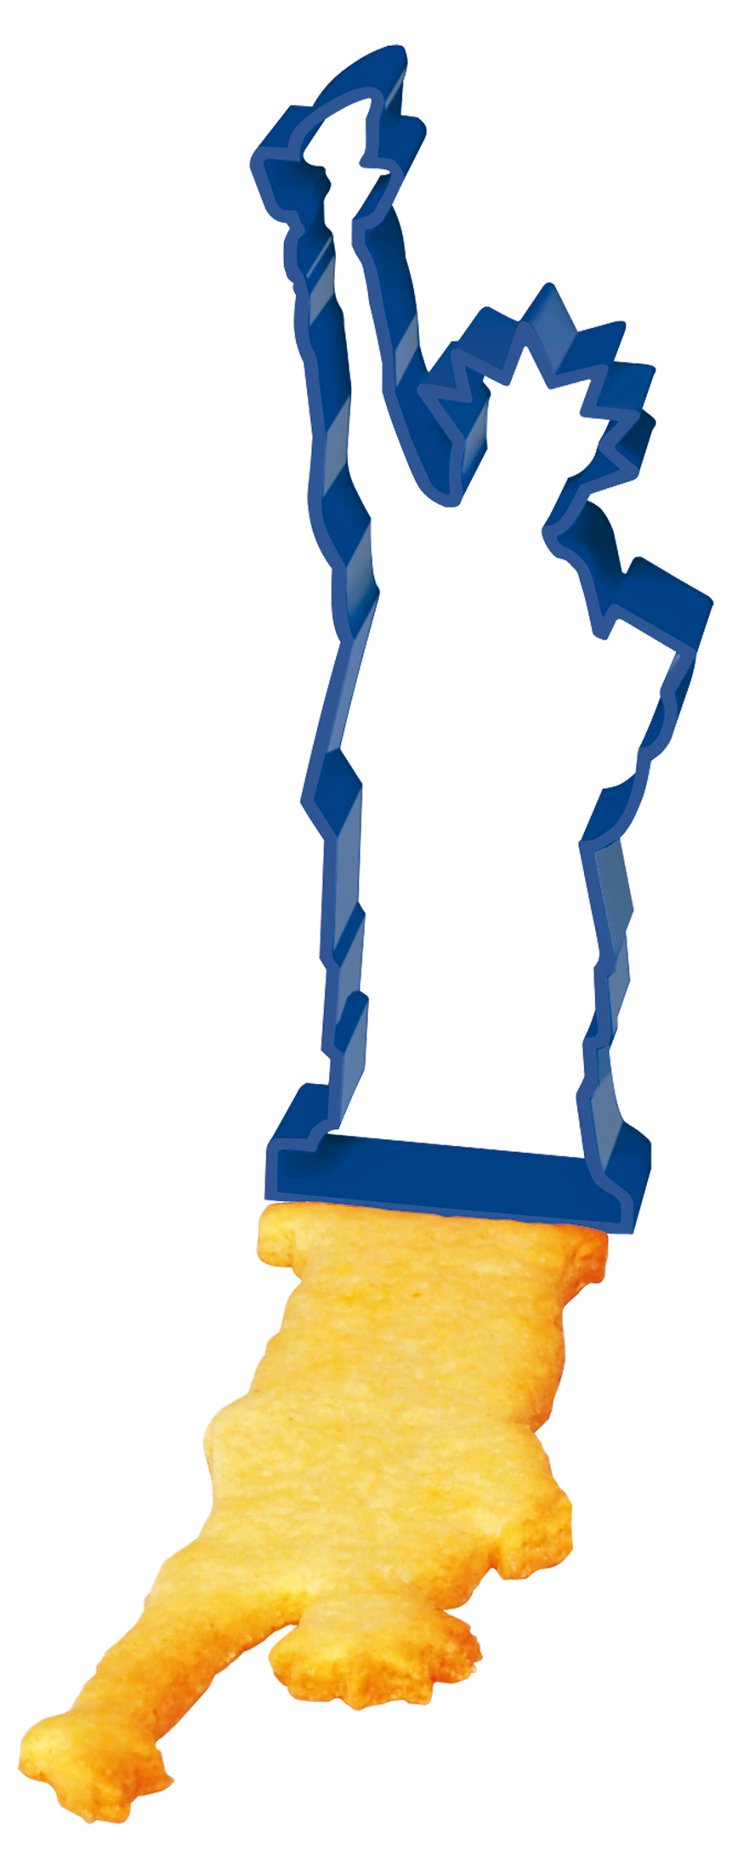 S/3 New York Cookie Cutters, Blue